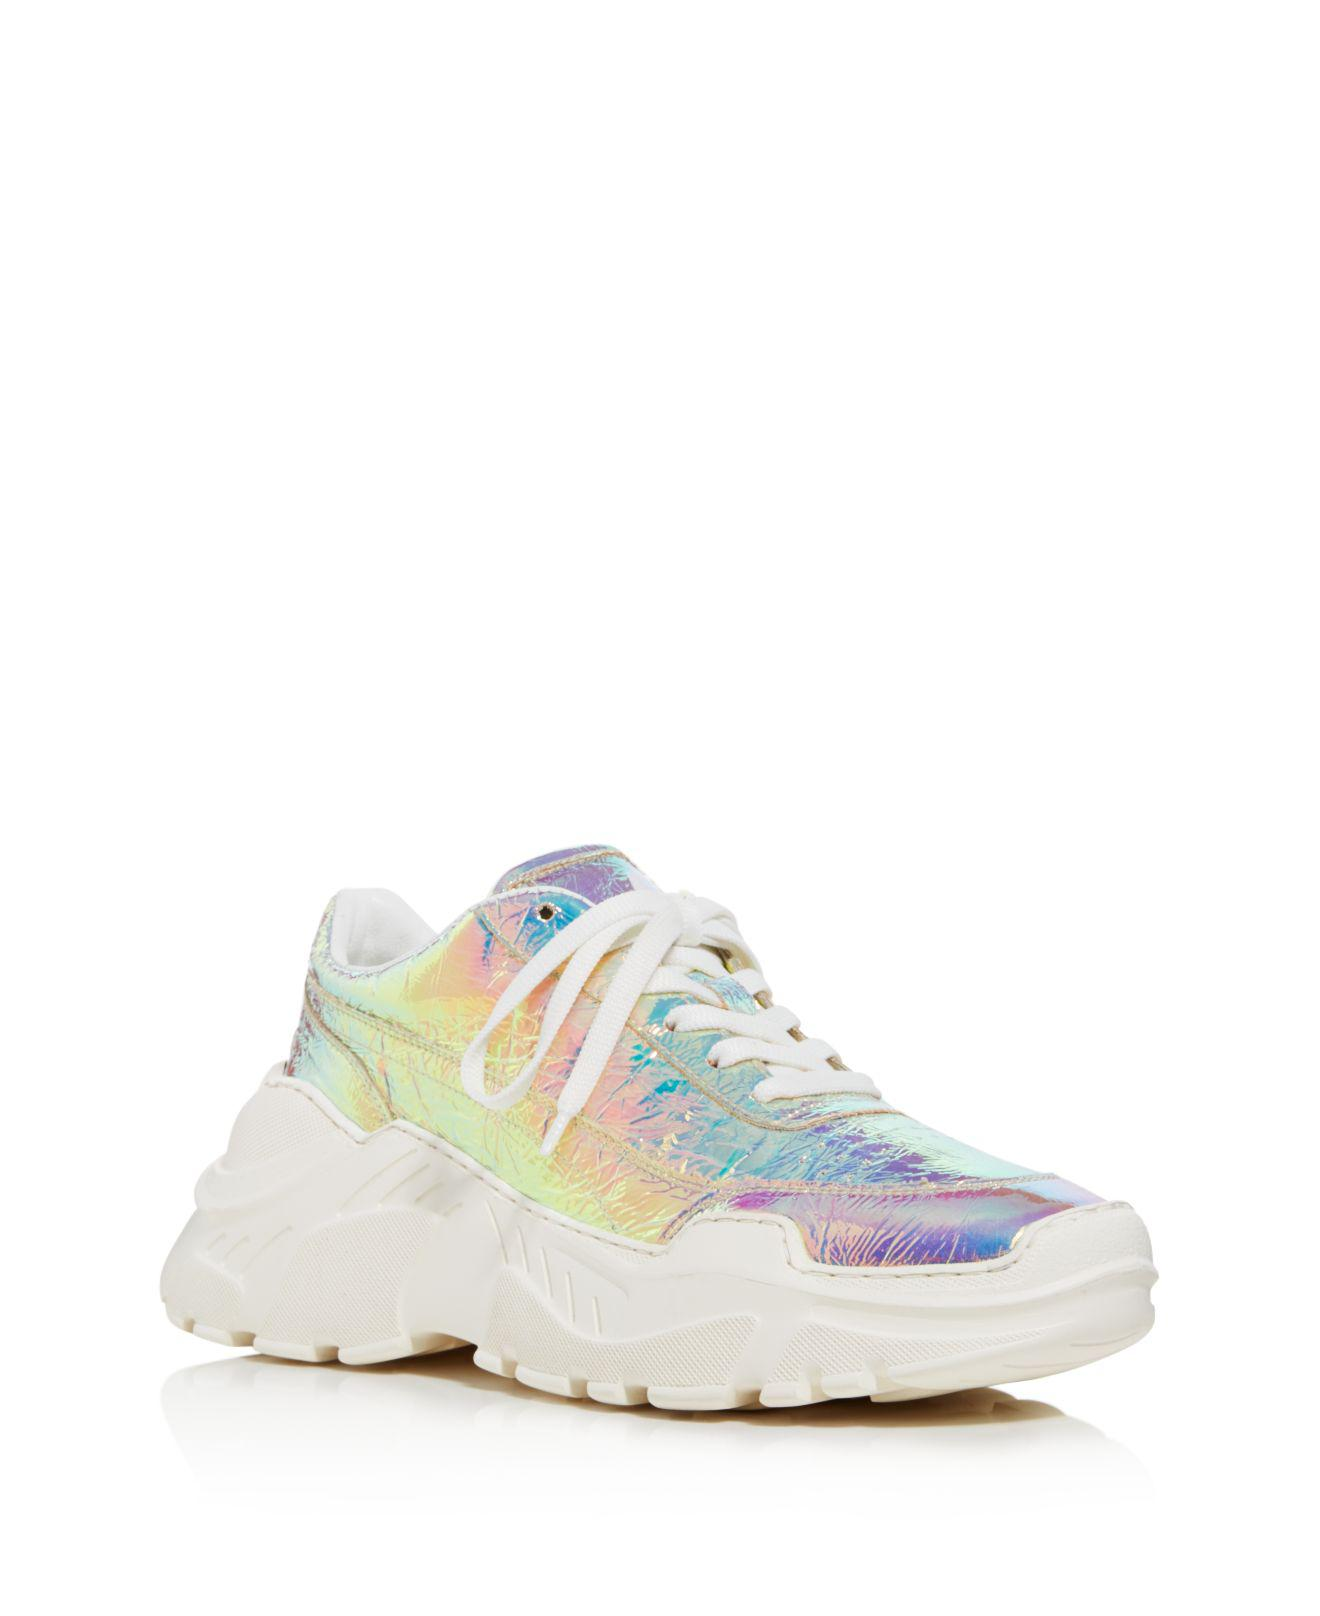 JOSHUA SANDERS Women's Leather & Holographic Foil Lace Up Sneakers 9nnSErNZZ